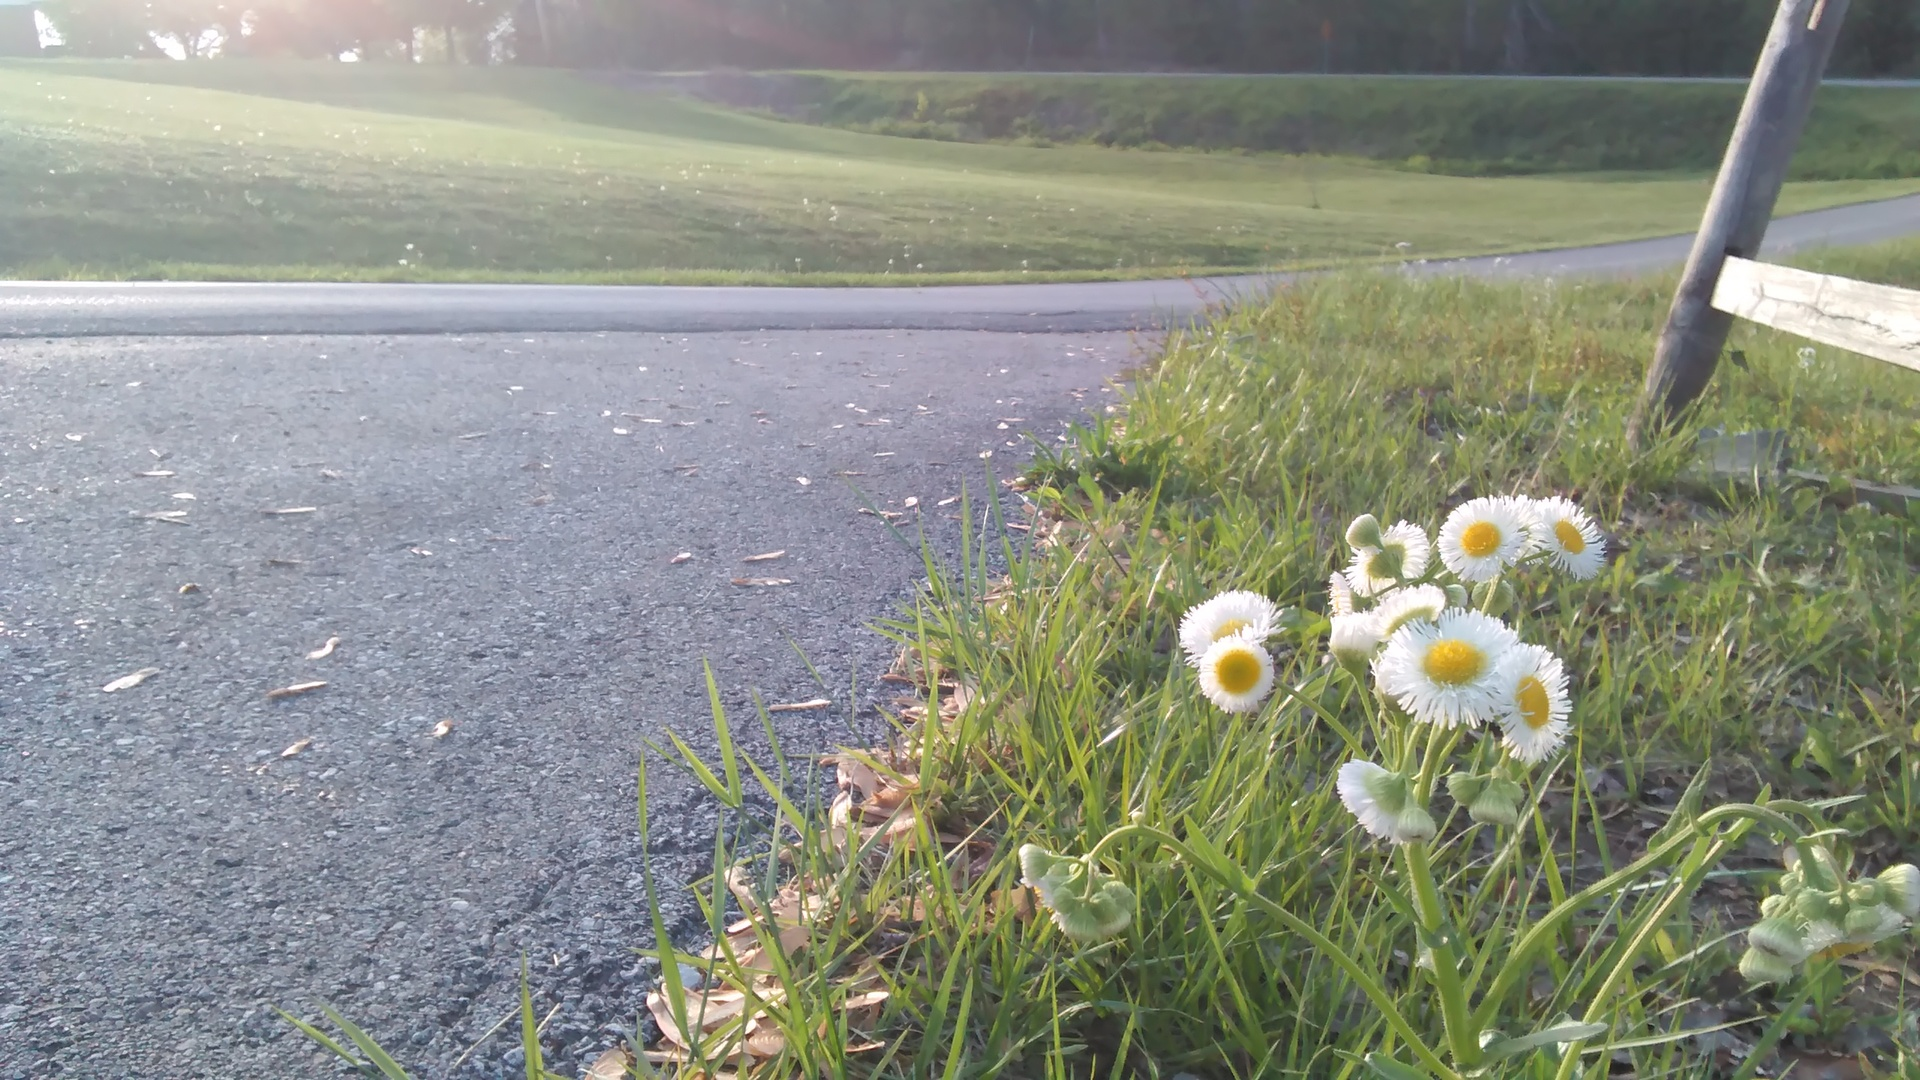 Roadside Daisies | codenamesailorearth, environment, flower, grass